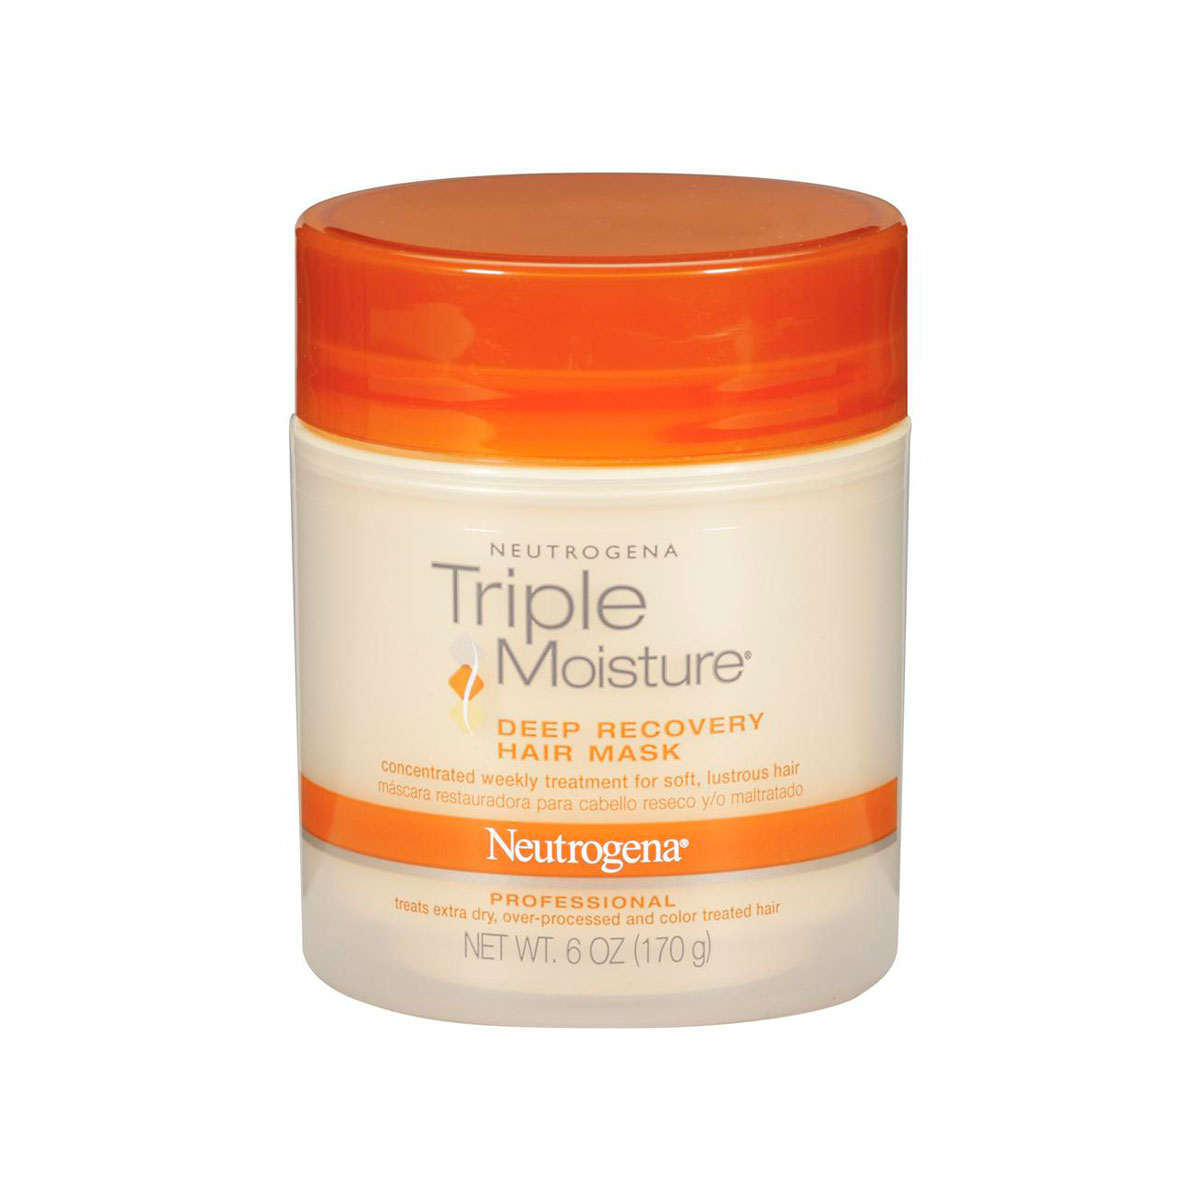 how to use neutrogena triple moisture hair mask